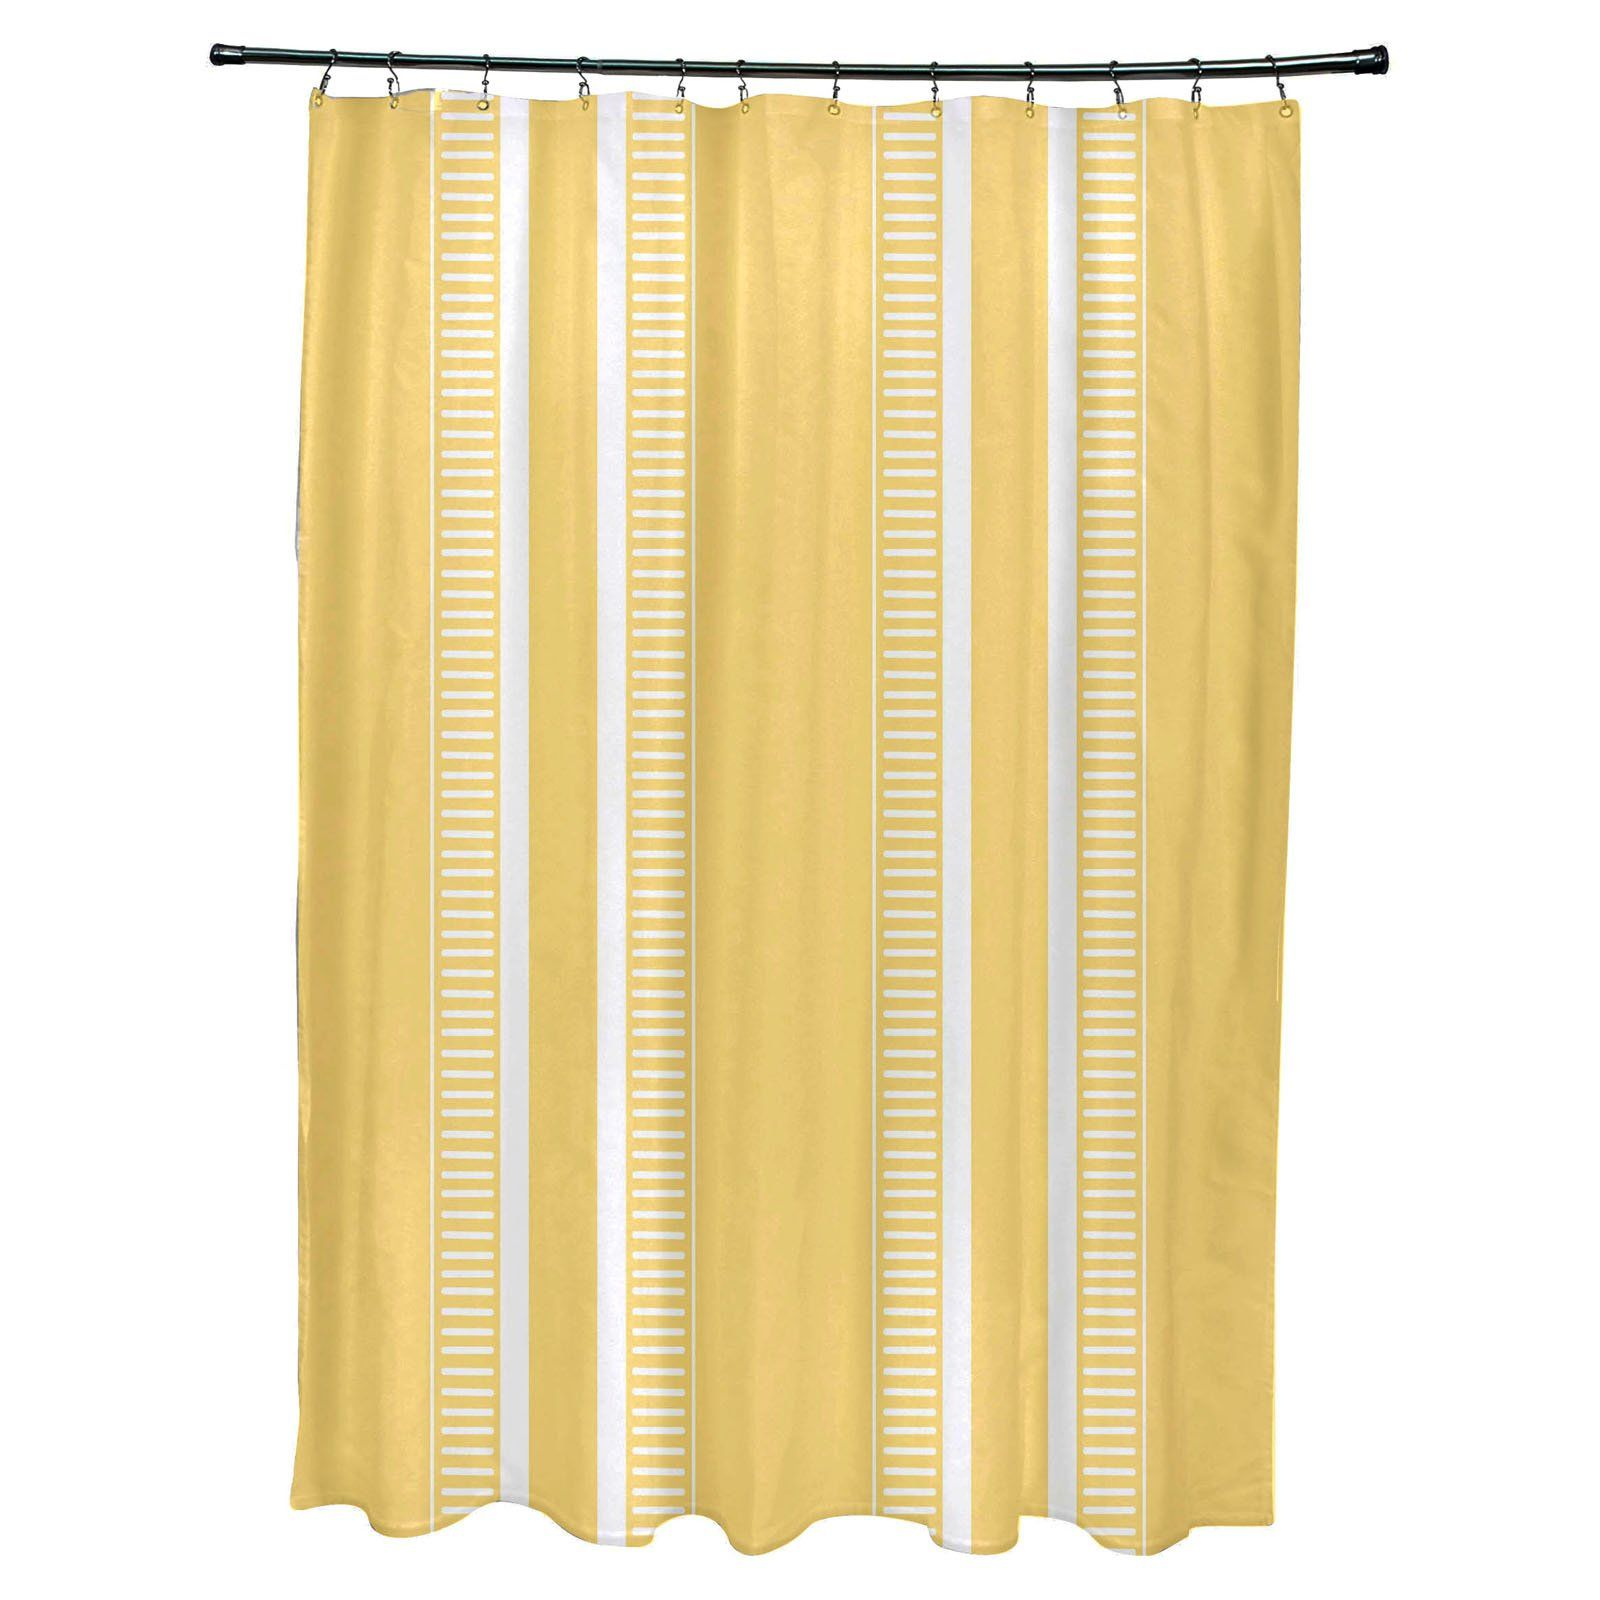 Home Gray Shower Curtains Yellow Shower Curtains Yellow Bathrooms